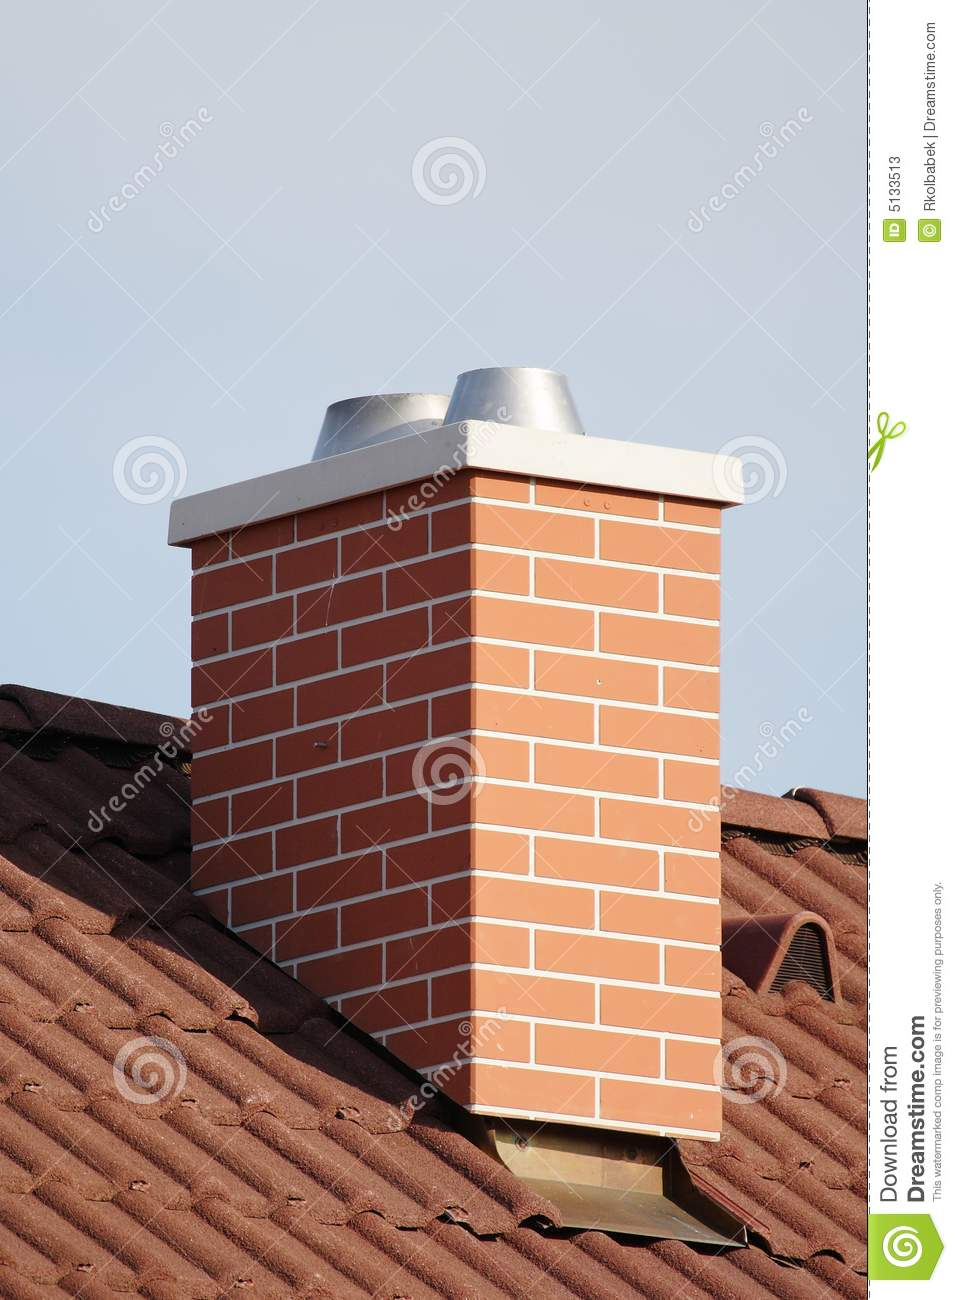 Chimney Stack Stock Image Image Of Blue Concrete